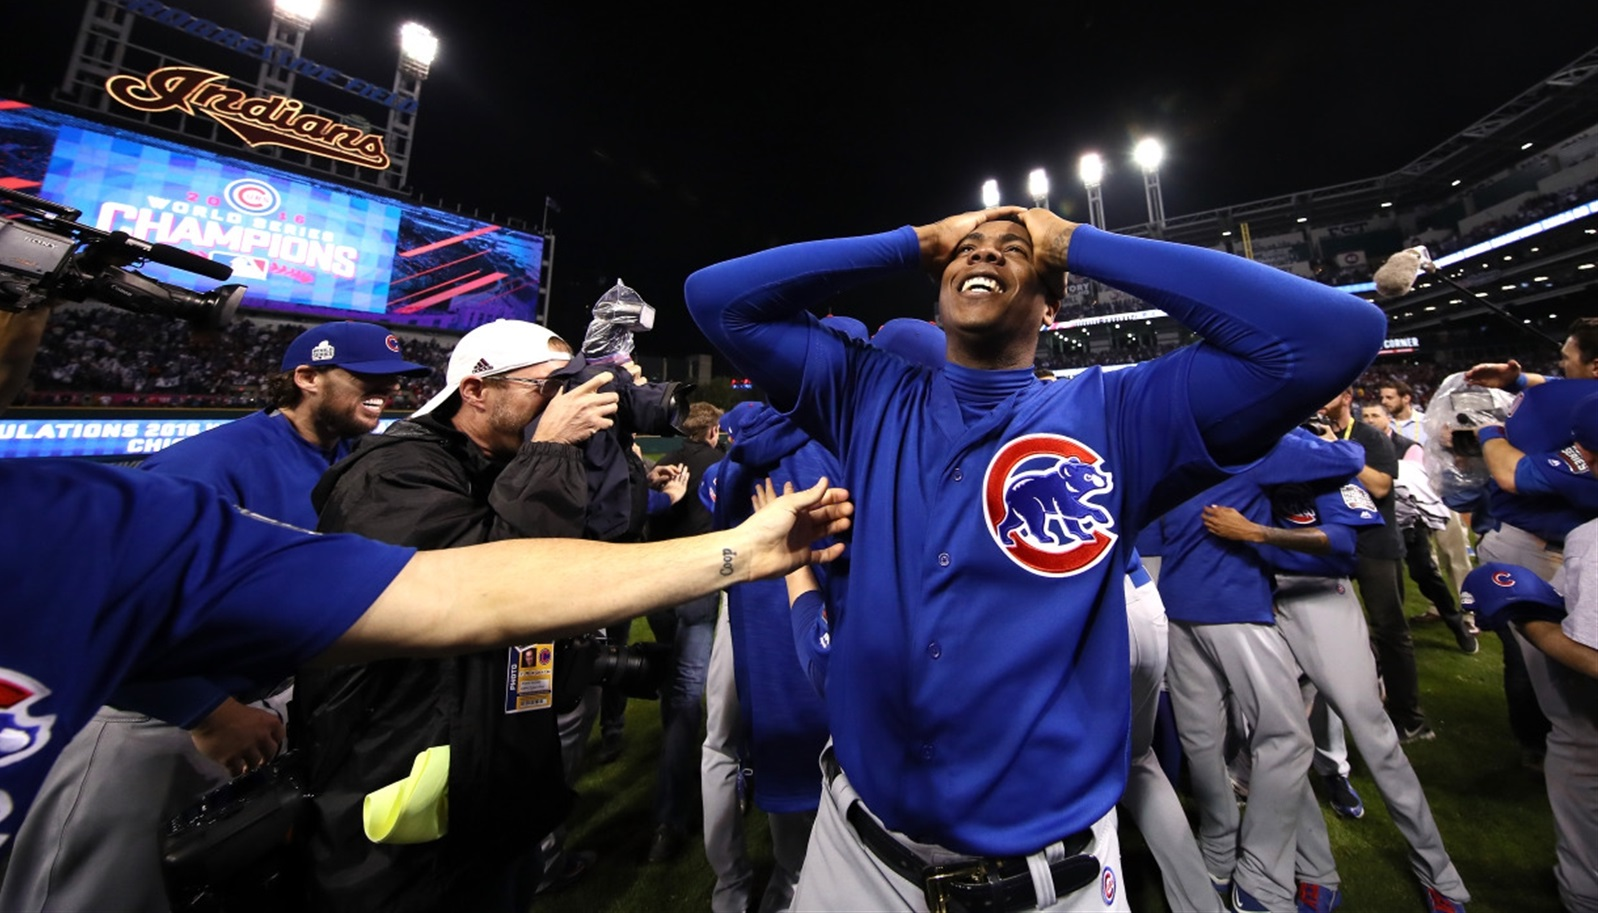 Cubs pitcher Aroldis Chapman celebrates Chicago's first World Series win in 108 years. (Getty Images)